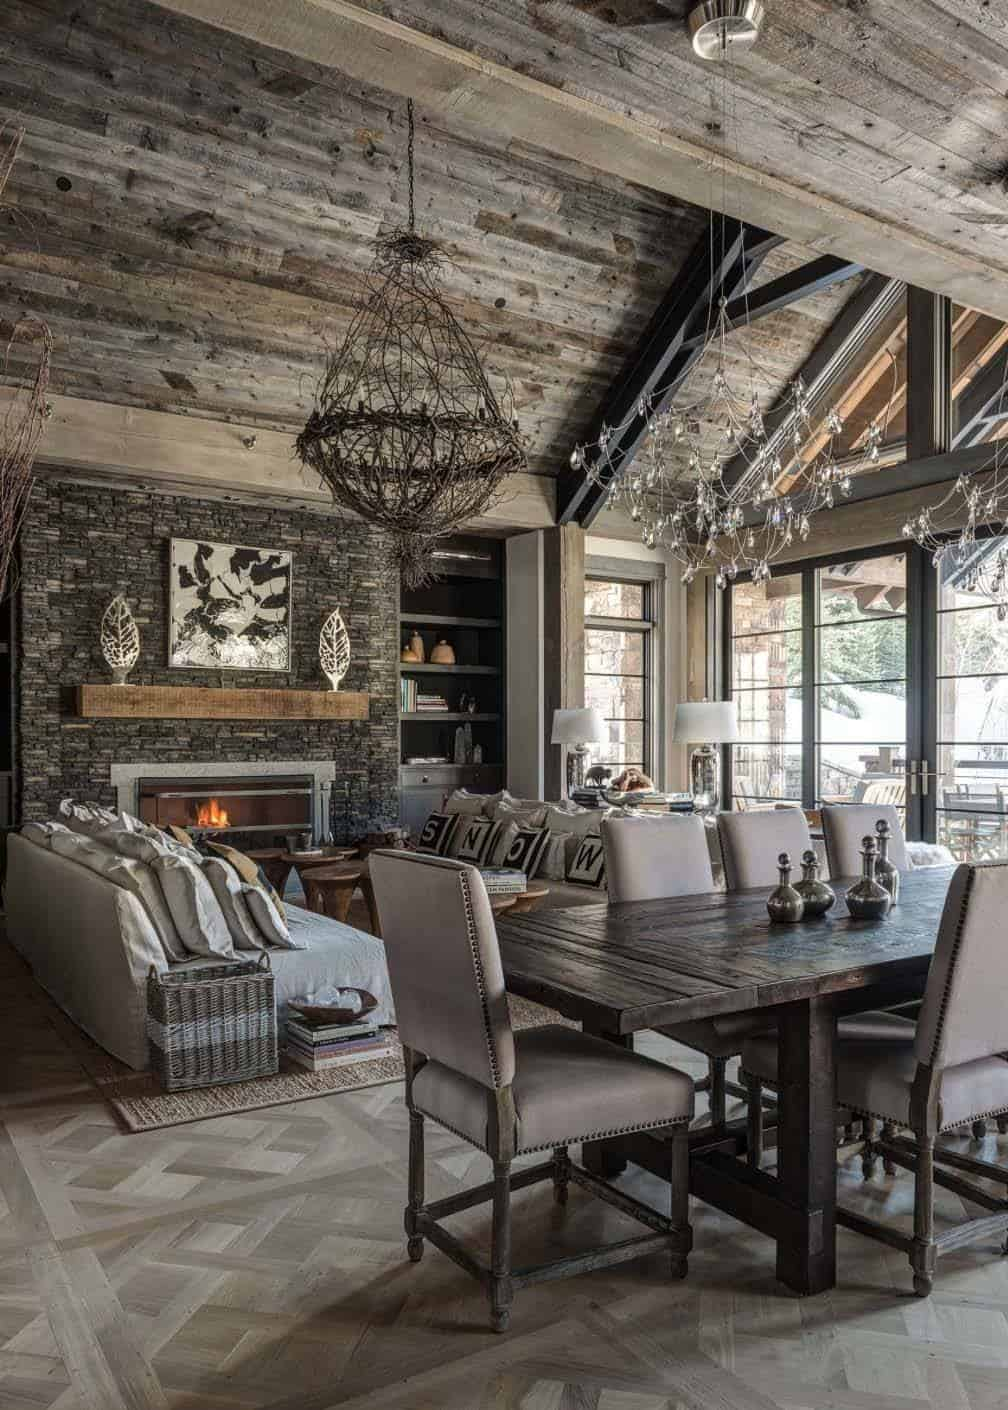 Rustic Mountain Chalet-Locati Architects-06-1 Kindesign